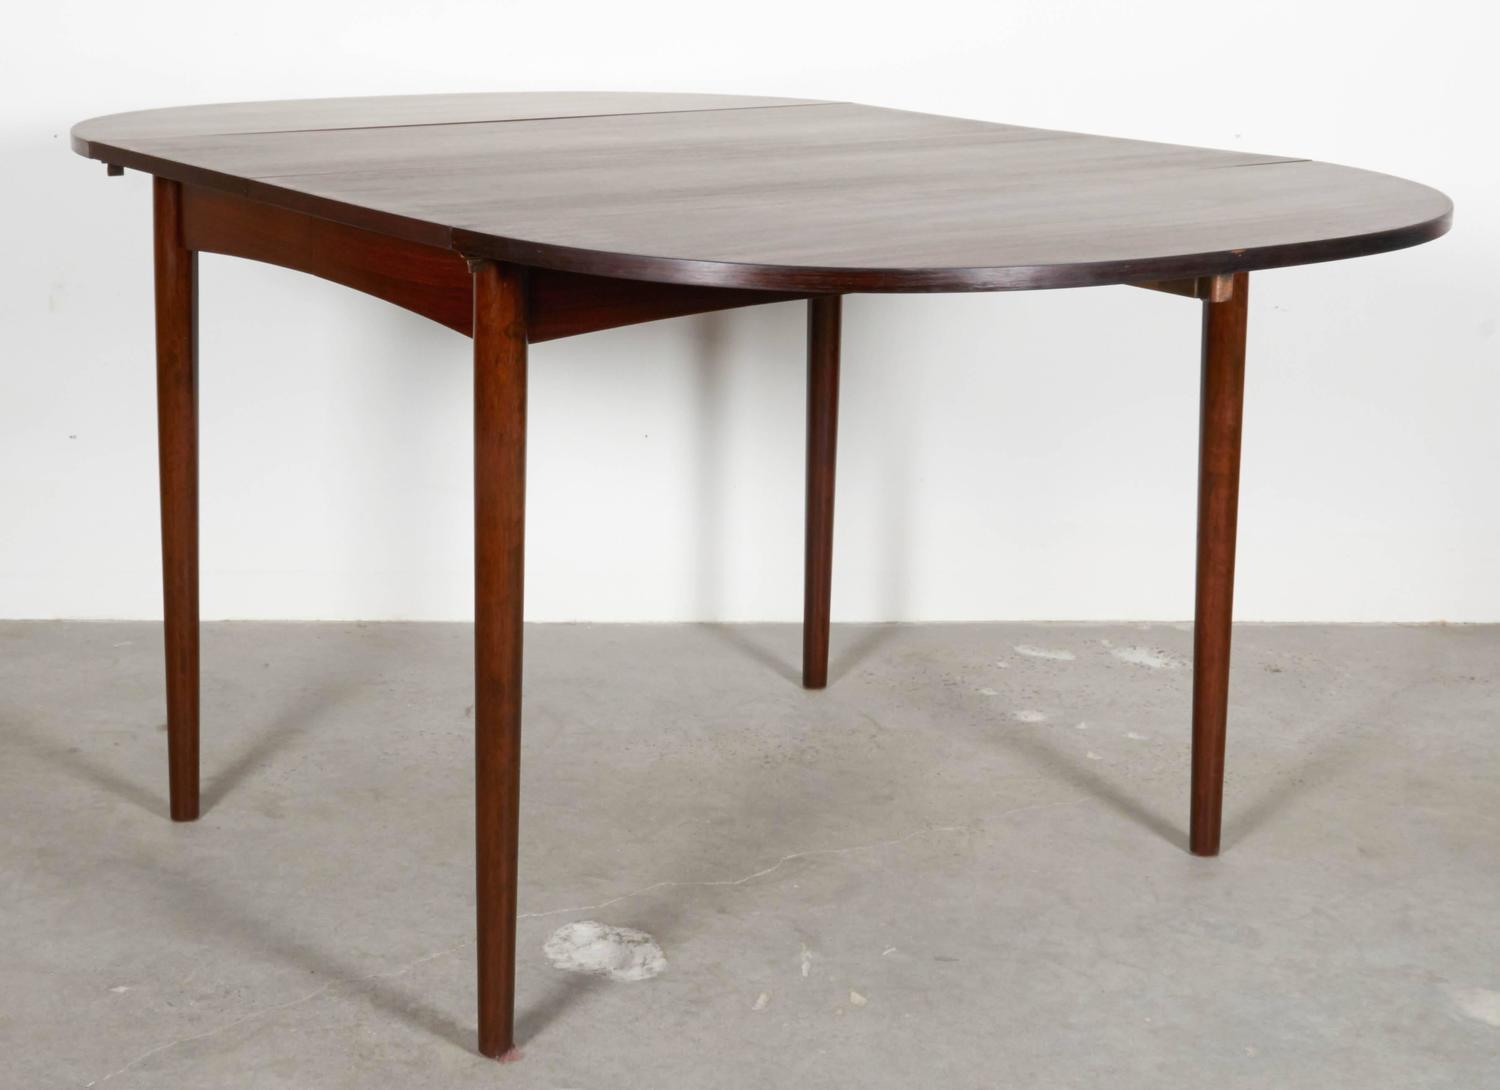 Rosewood Drop Leaf Dining Table at 1stdibs : IMG4149z from www.1stdibs.com size 1500 x 1090 jpeg 75kB